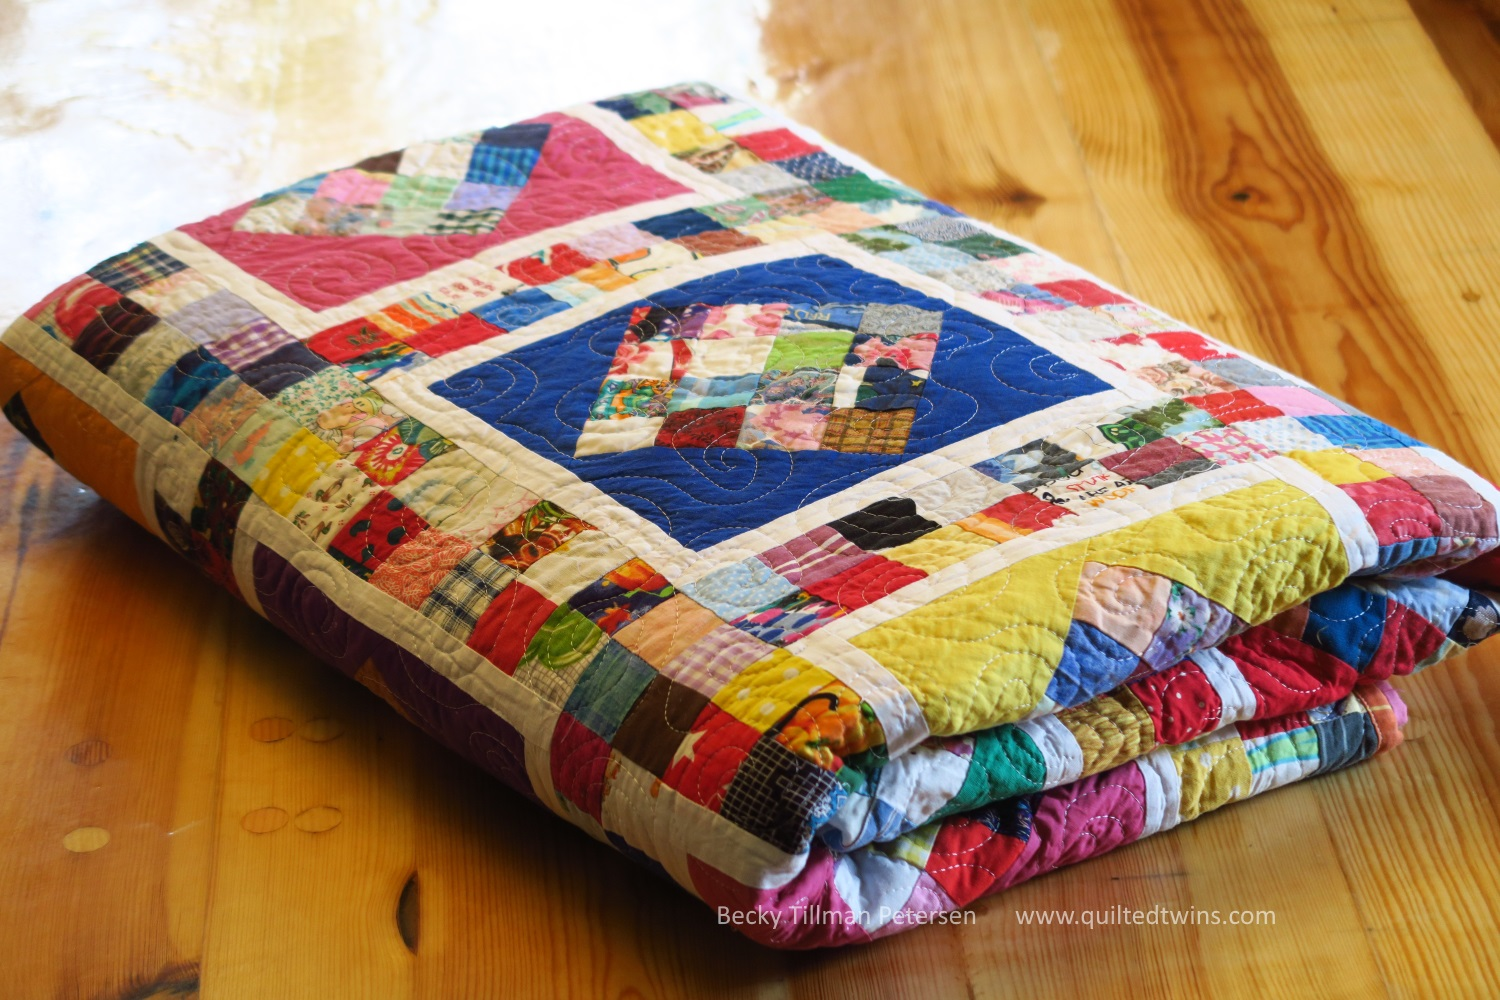 The quilt roll!